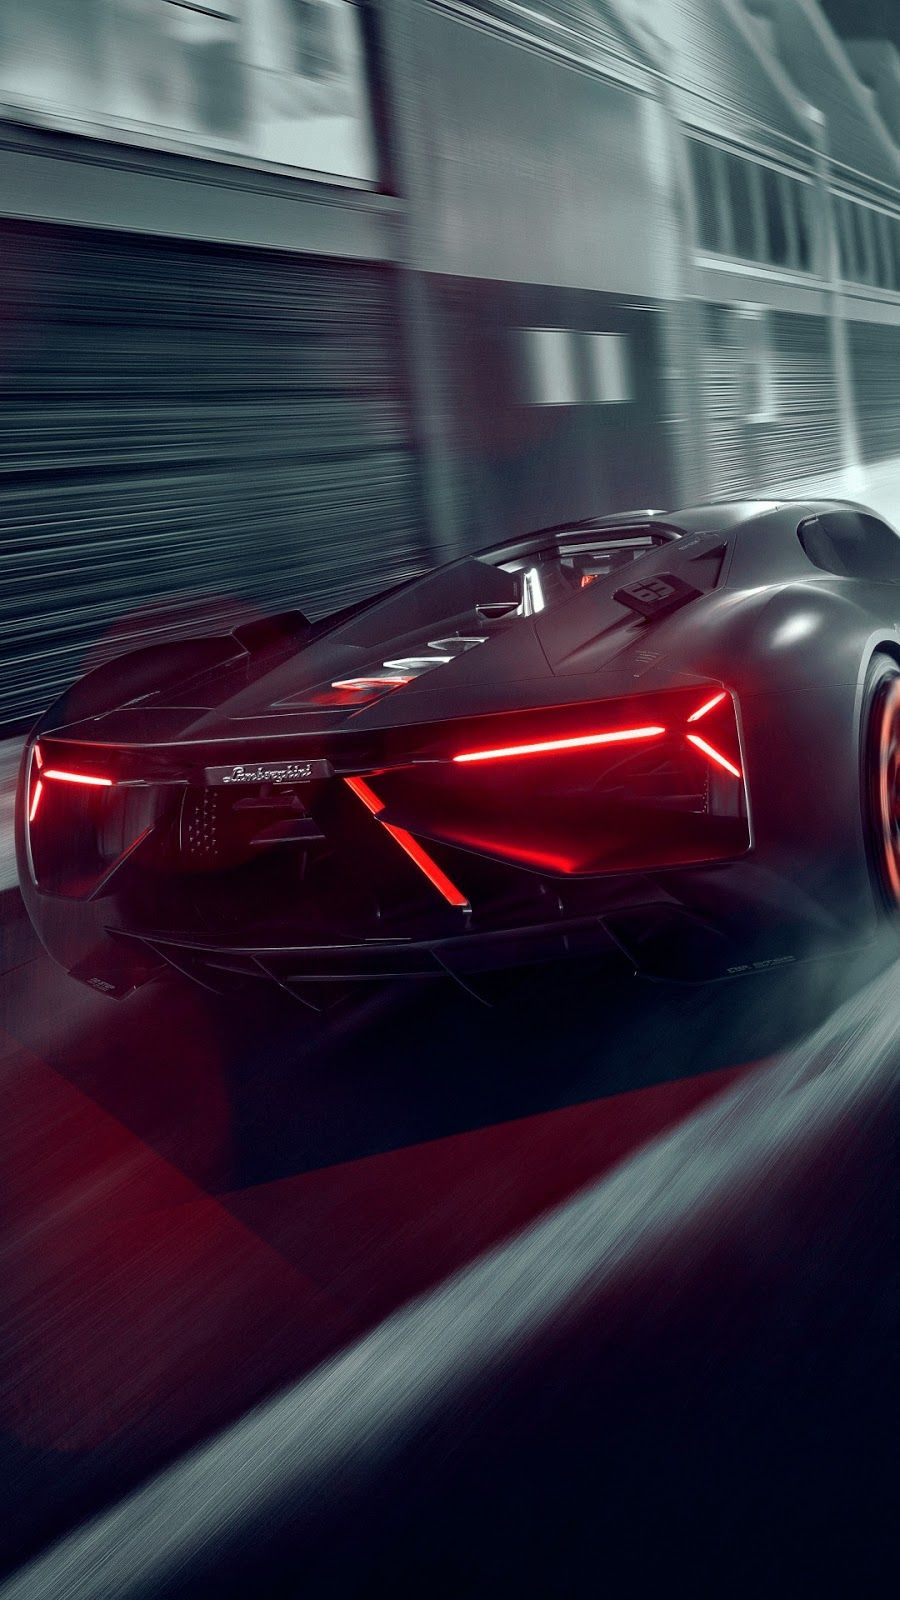 2019 Lamborghini Terzo Millennio Download Free Hd Wallpaper